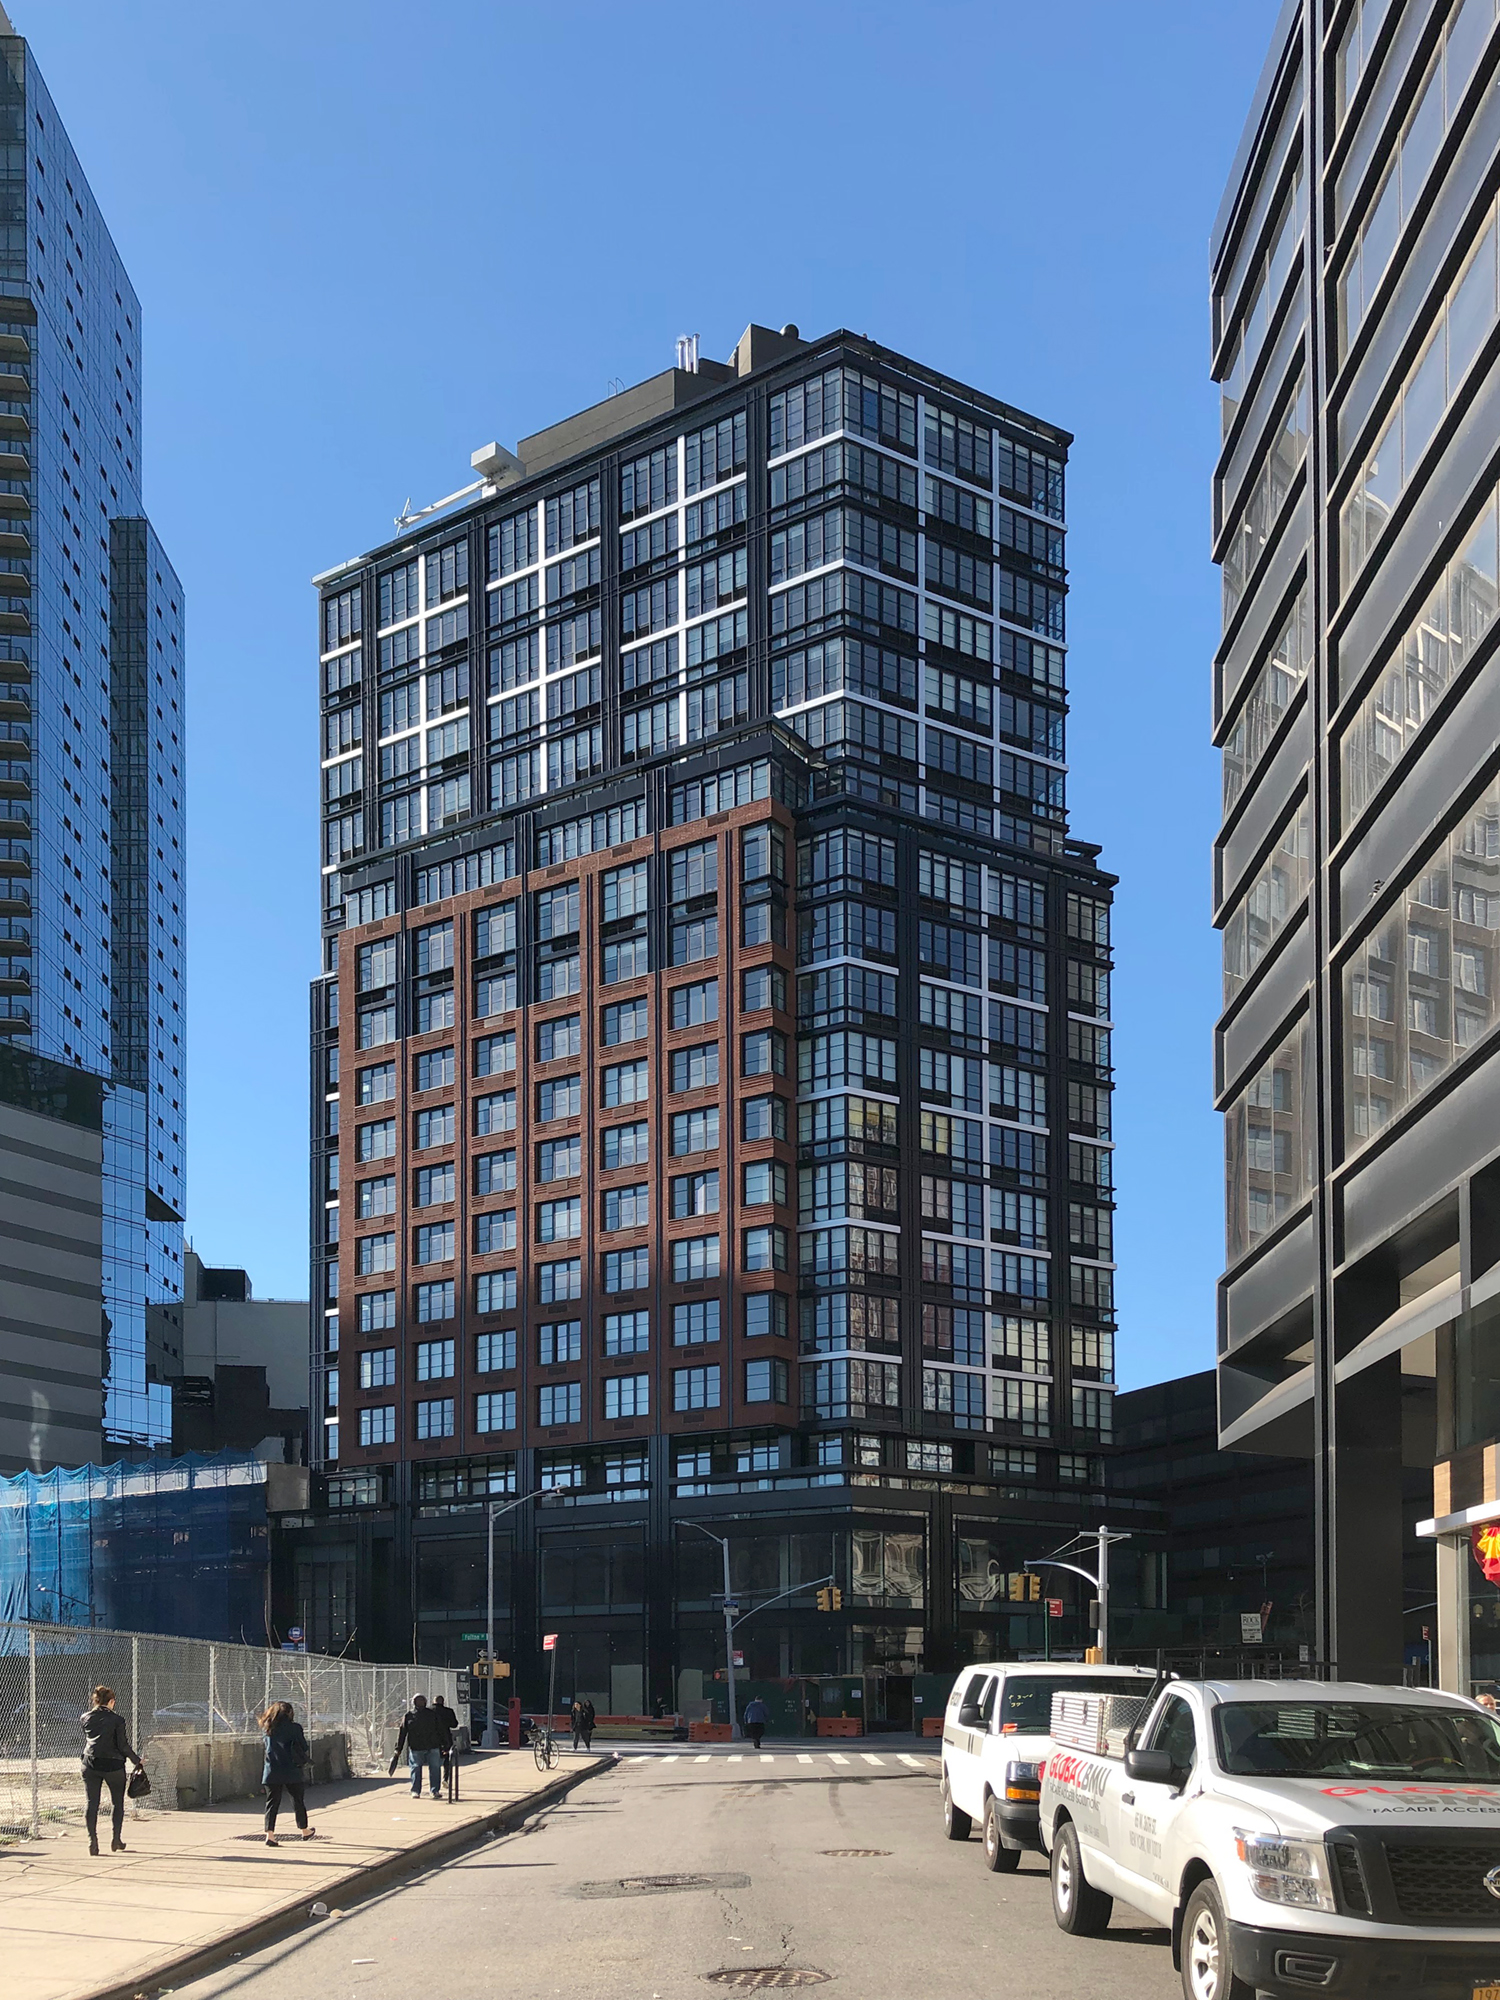 Construction Finishes On 1 Flatbush Avenue In Downtown